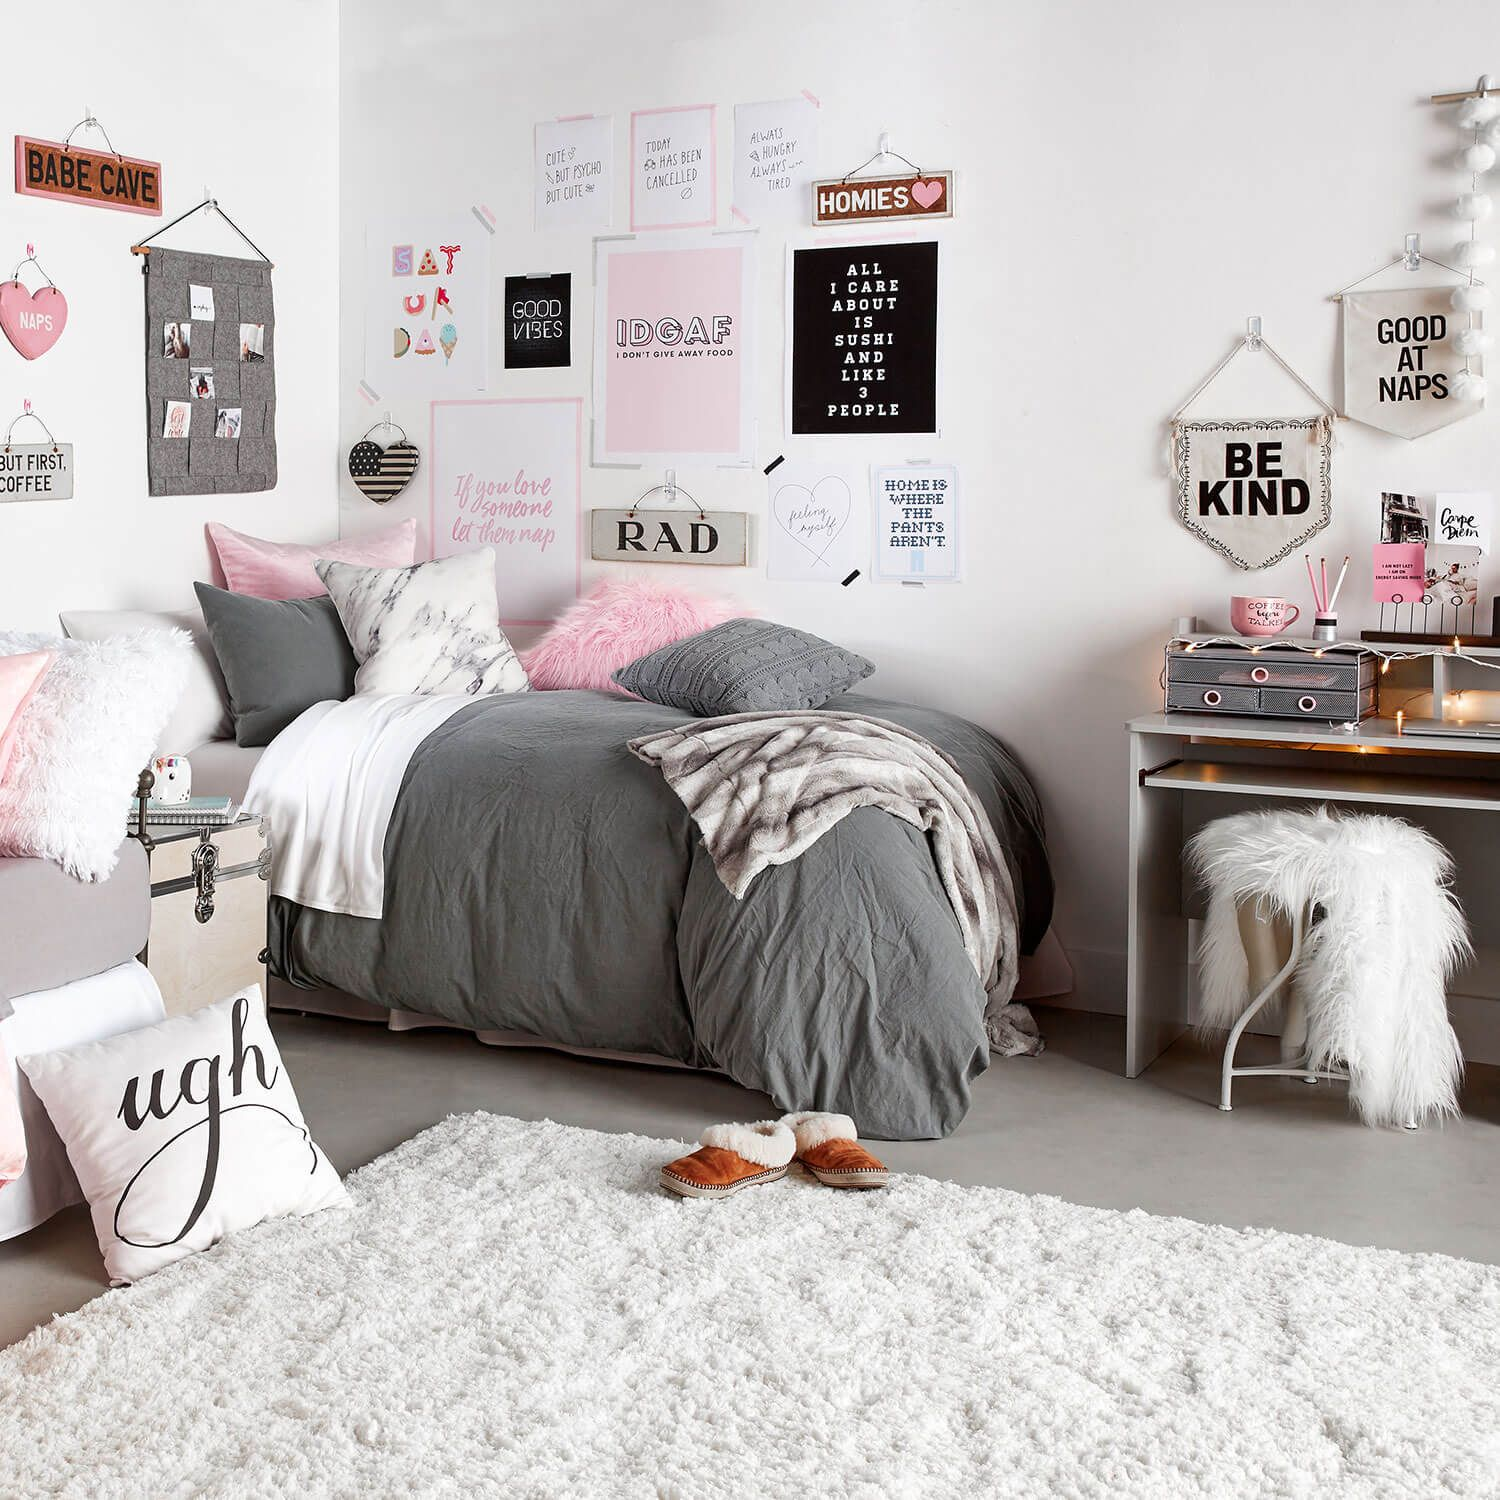 dormify classically cozy room shop to get the look dormify essentials in 2019. Black Bedroom Furniture Sets. Home Design Ideas